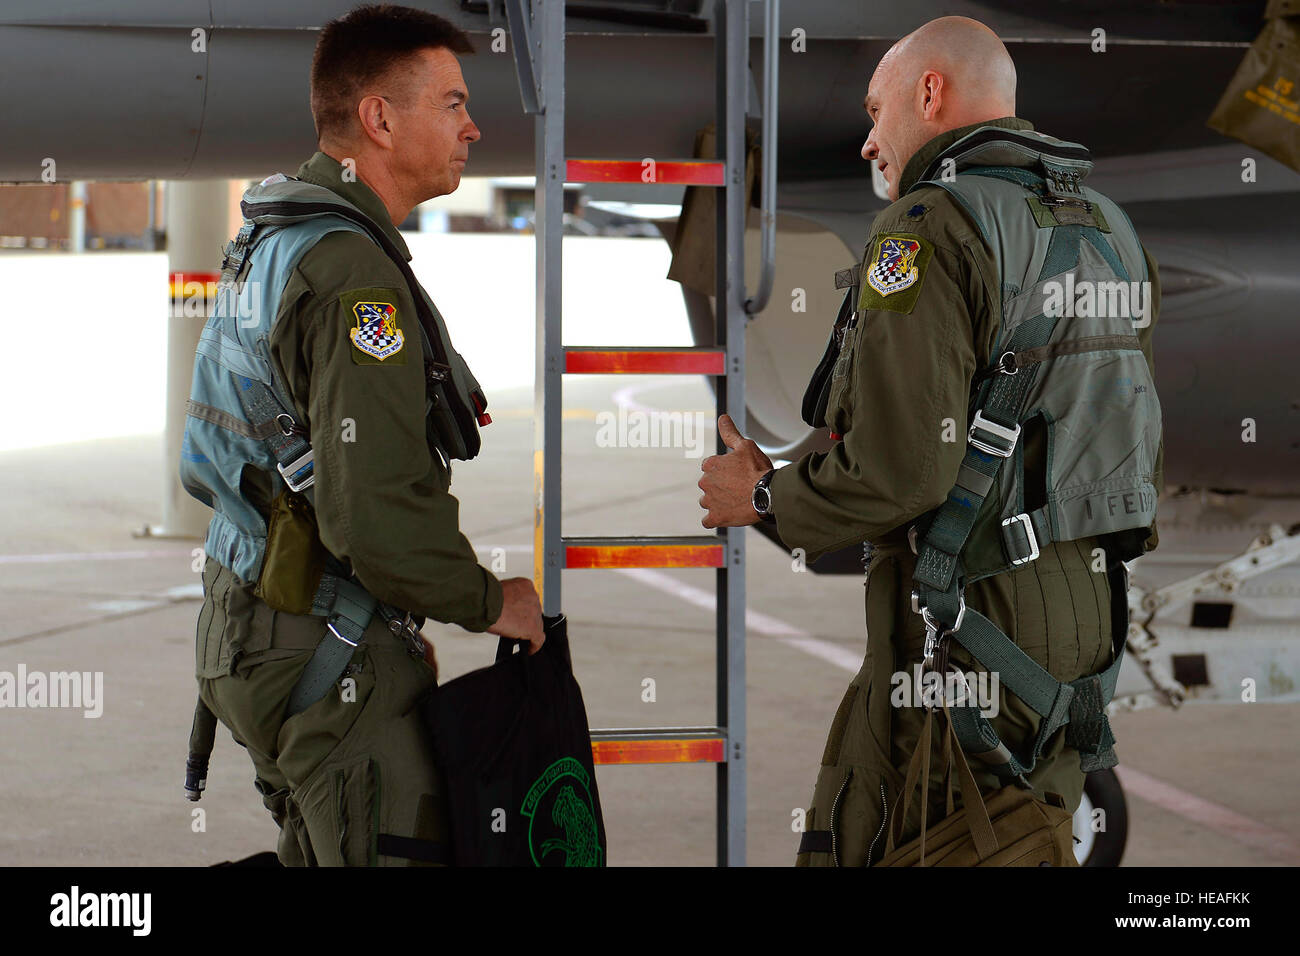 U.S. Air Force Lt. Col. Christopher Robinson (right), 419th Fighter Wing, briefs Maj. Gen. Jefferson S. Burton, - Stock Image